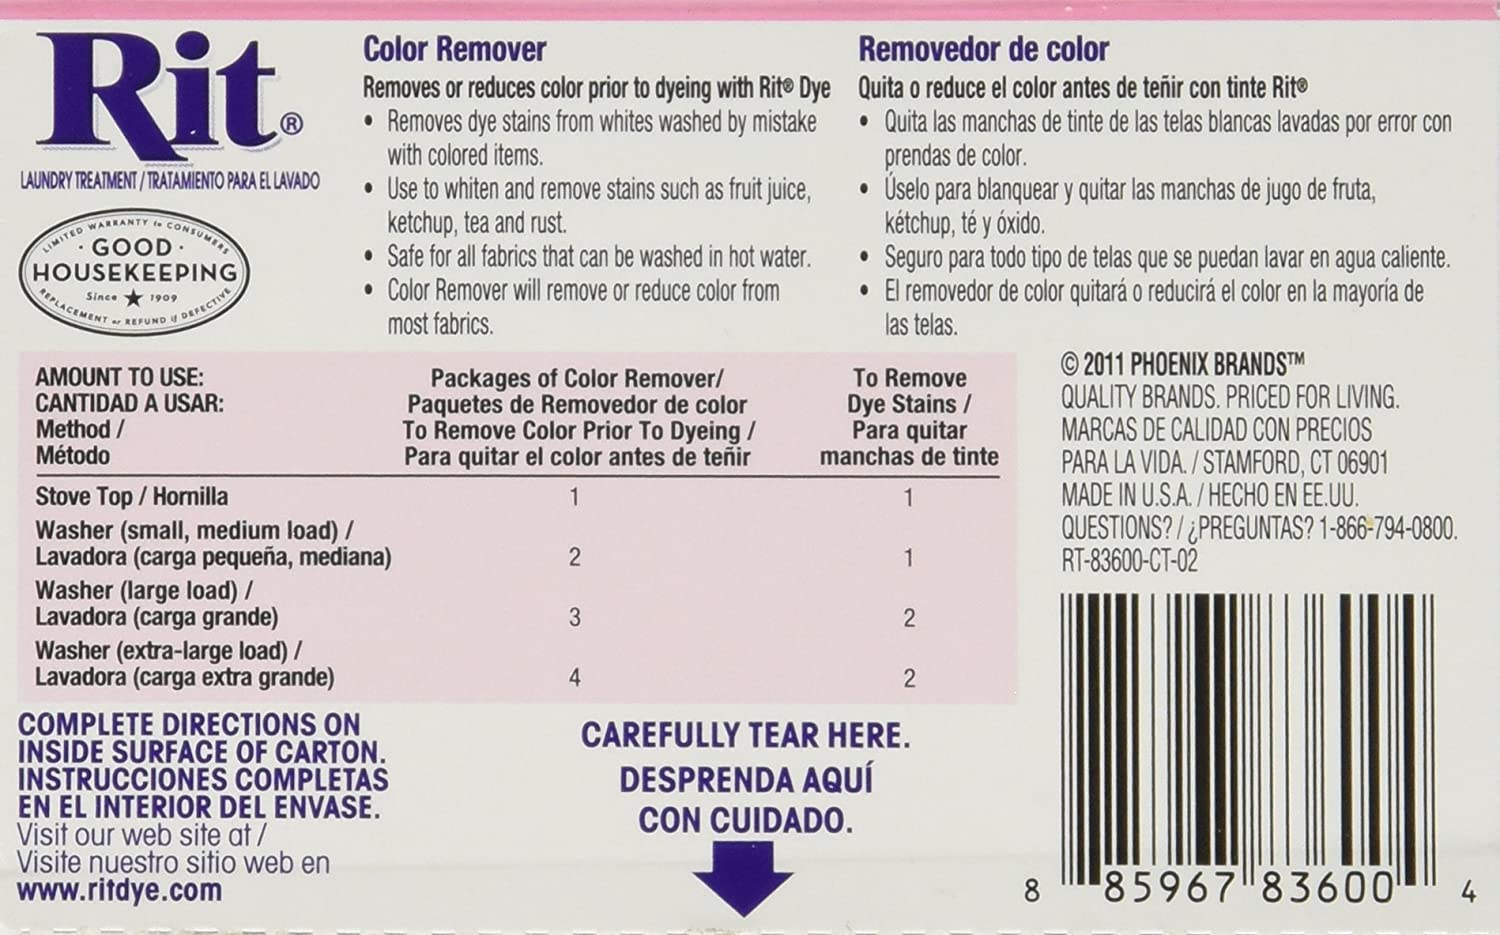 Amazon.com: Rit Dye Laundry Treatment Color Remover Powder, 2 oz, 10-Pack